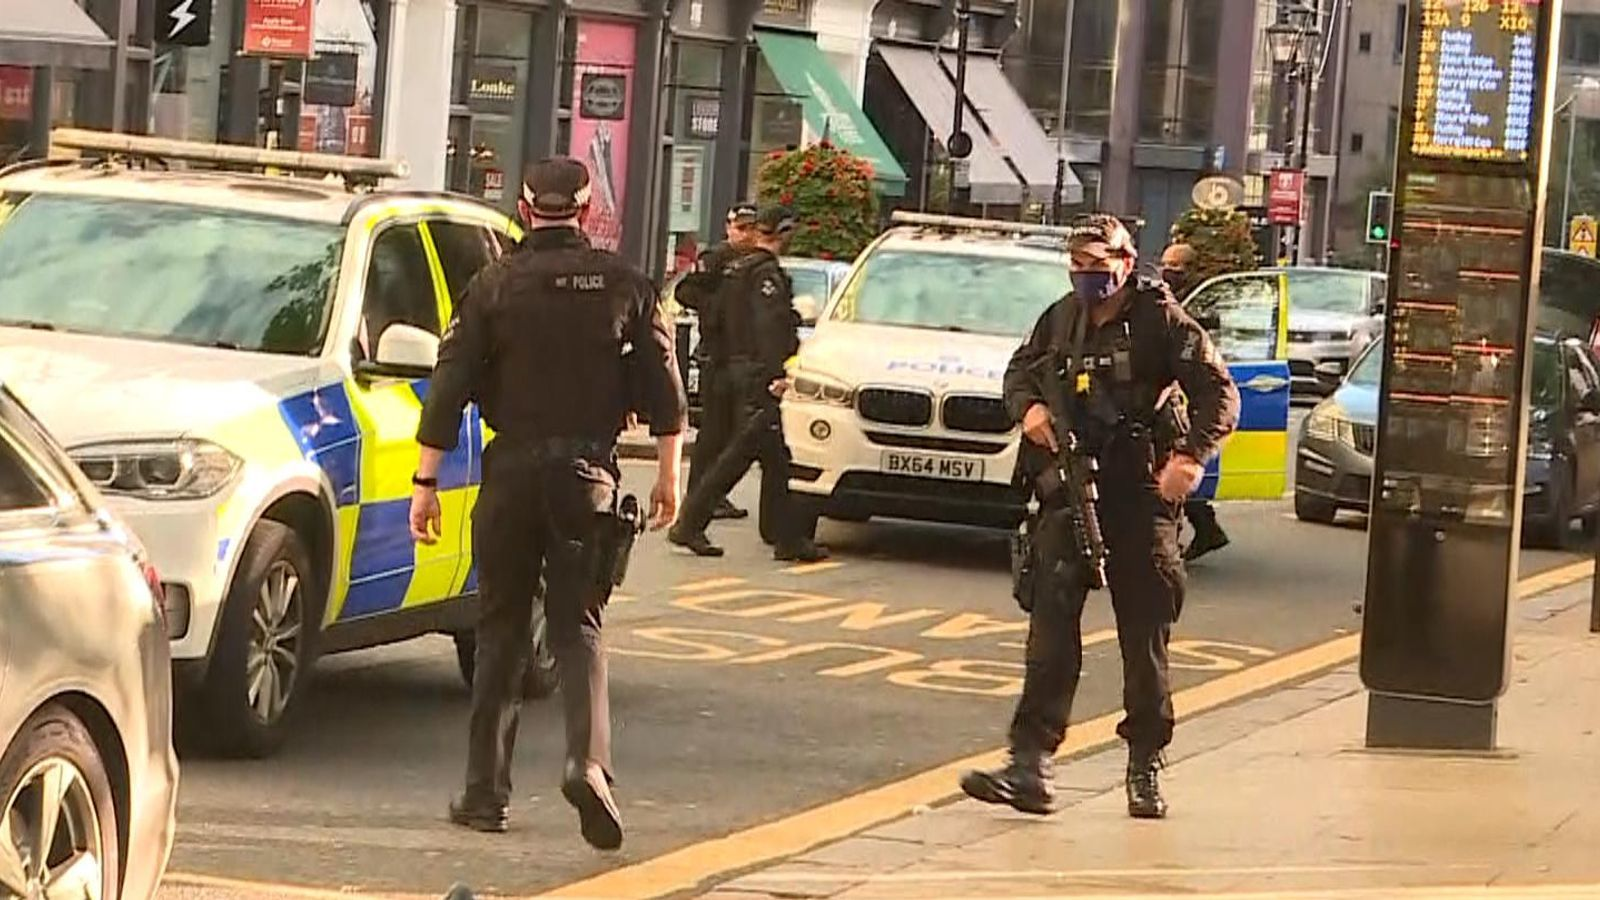 Police in UK`s Birmingham declare `major incident` after multiple stabbings in city